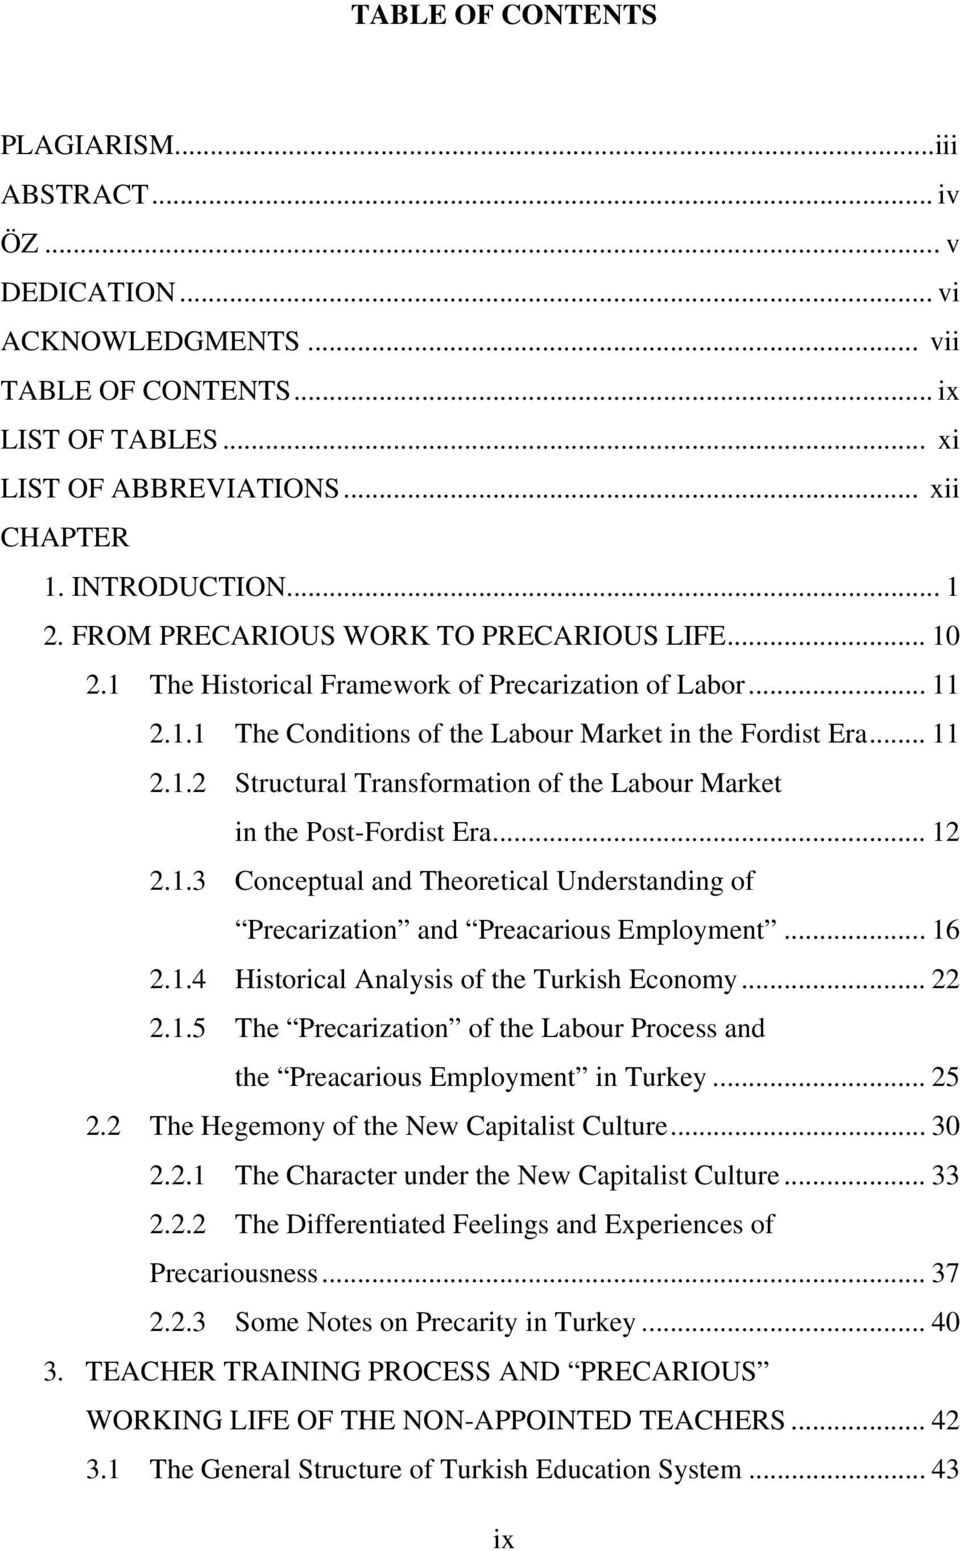 .. 12 2.1.3 Conceptual and Theoretical Understanding of Precarization and Preacarious Employment... 16 2.1.4 Historical Analysis of the Turkish Economy... 22 2.1.5 The Precarization of the Labour Process and the Preacarious Employment in Turkey.